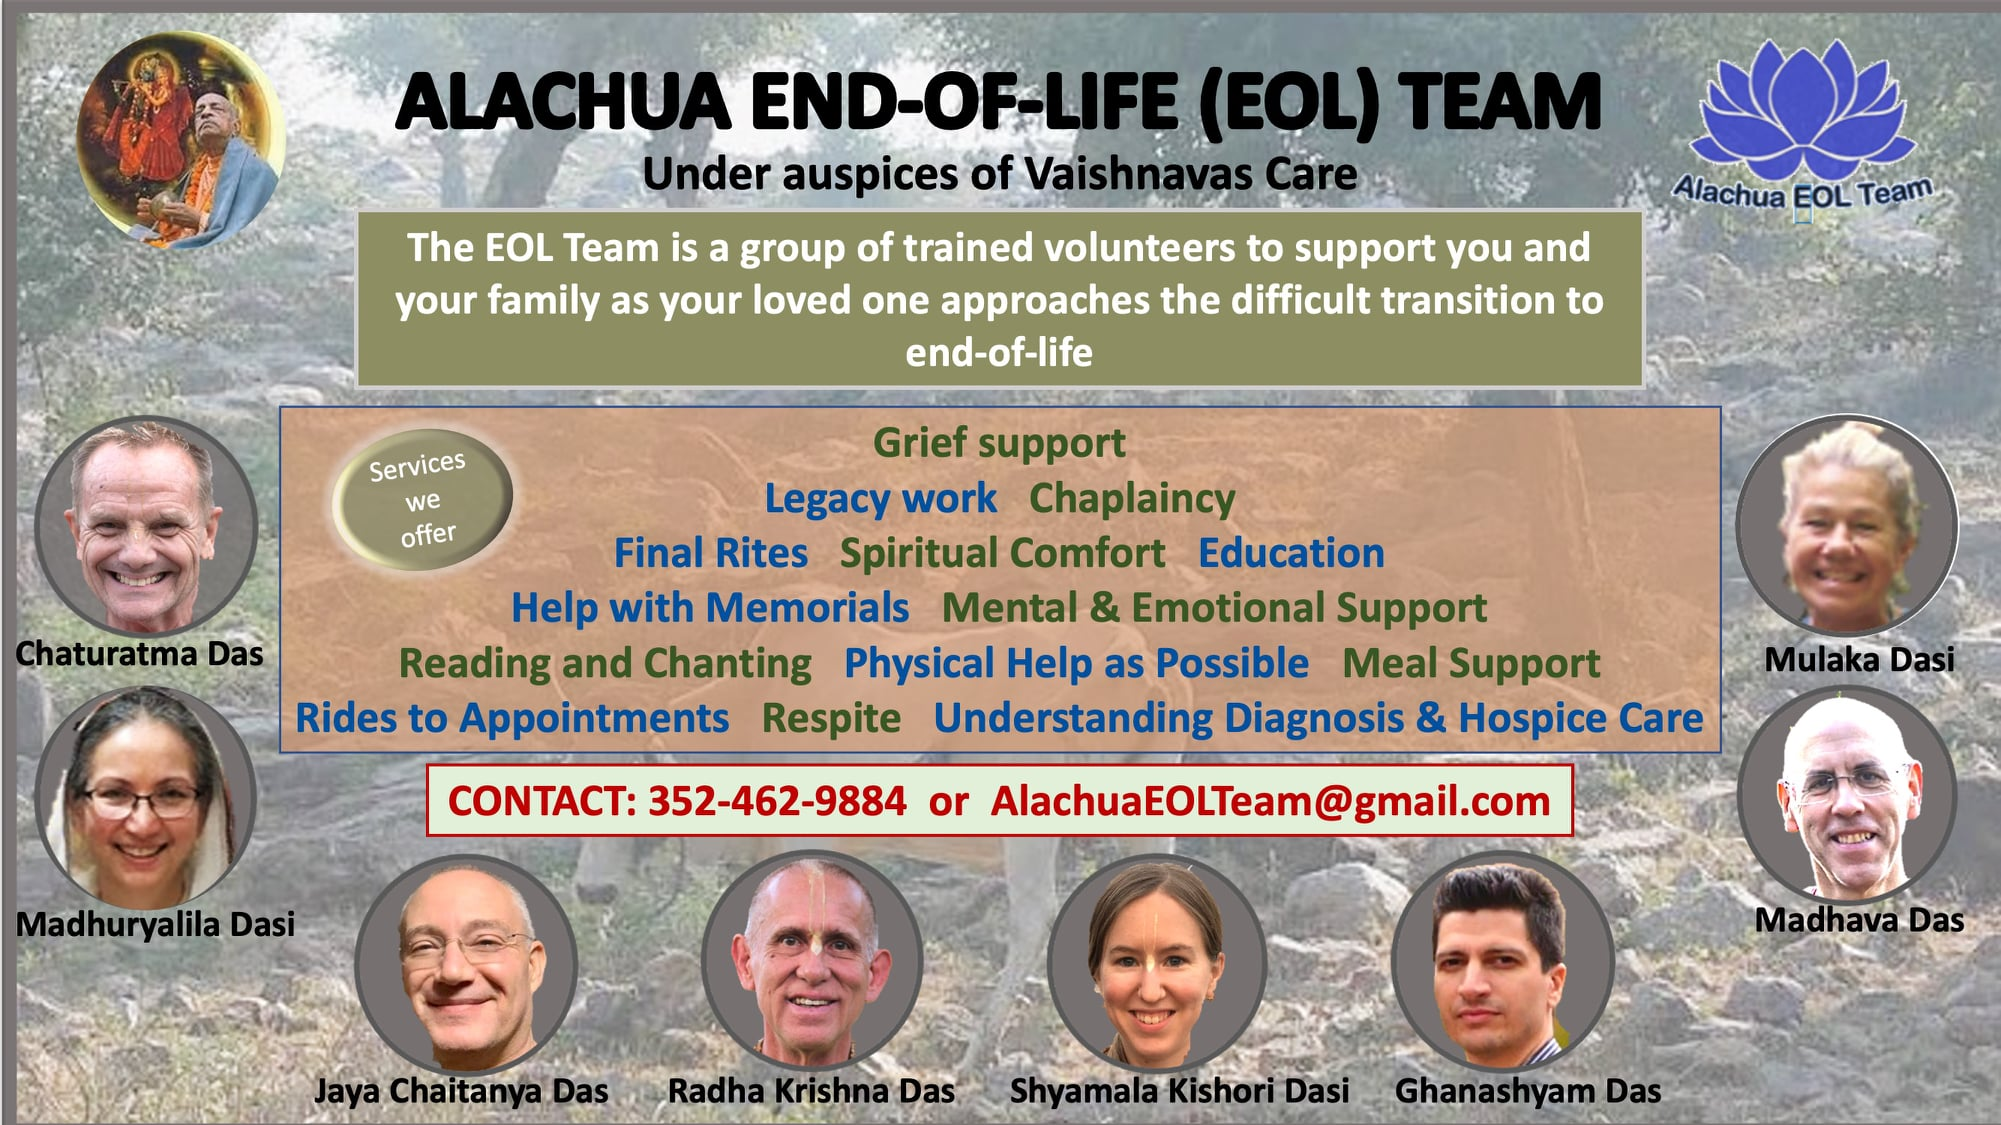 Alachua End-of-Life Team